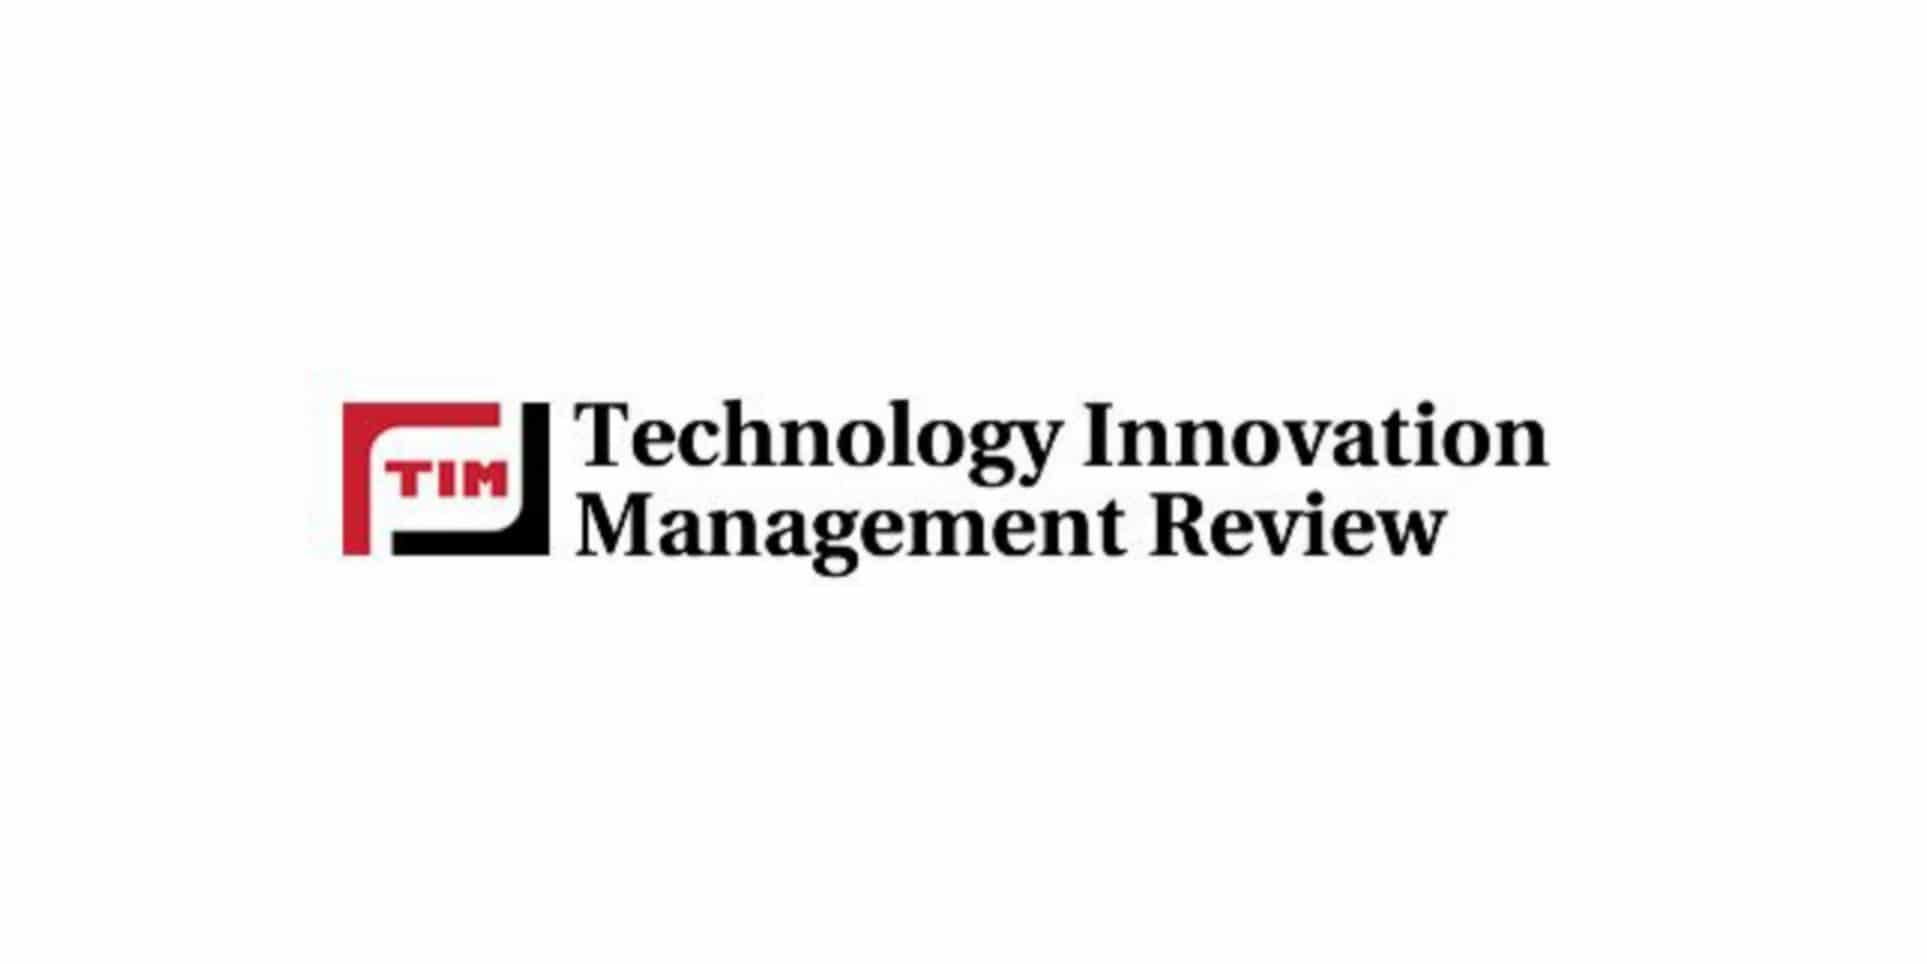 technology innovation management review logo